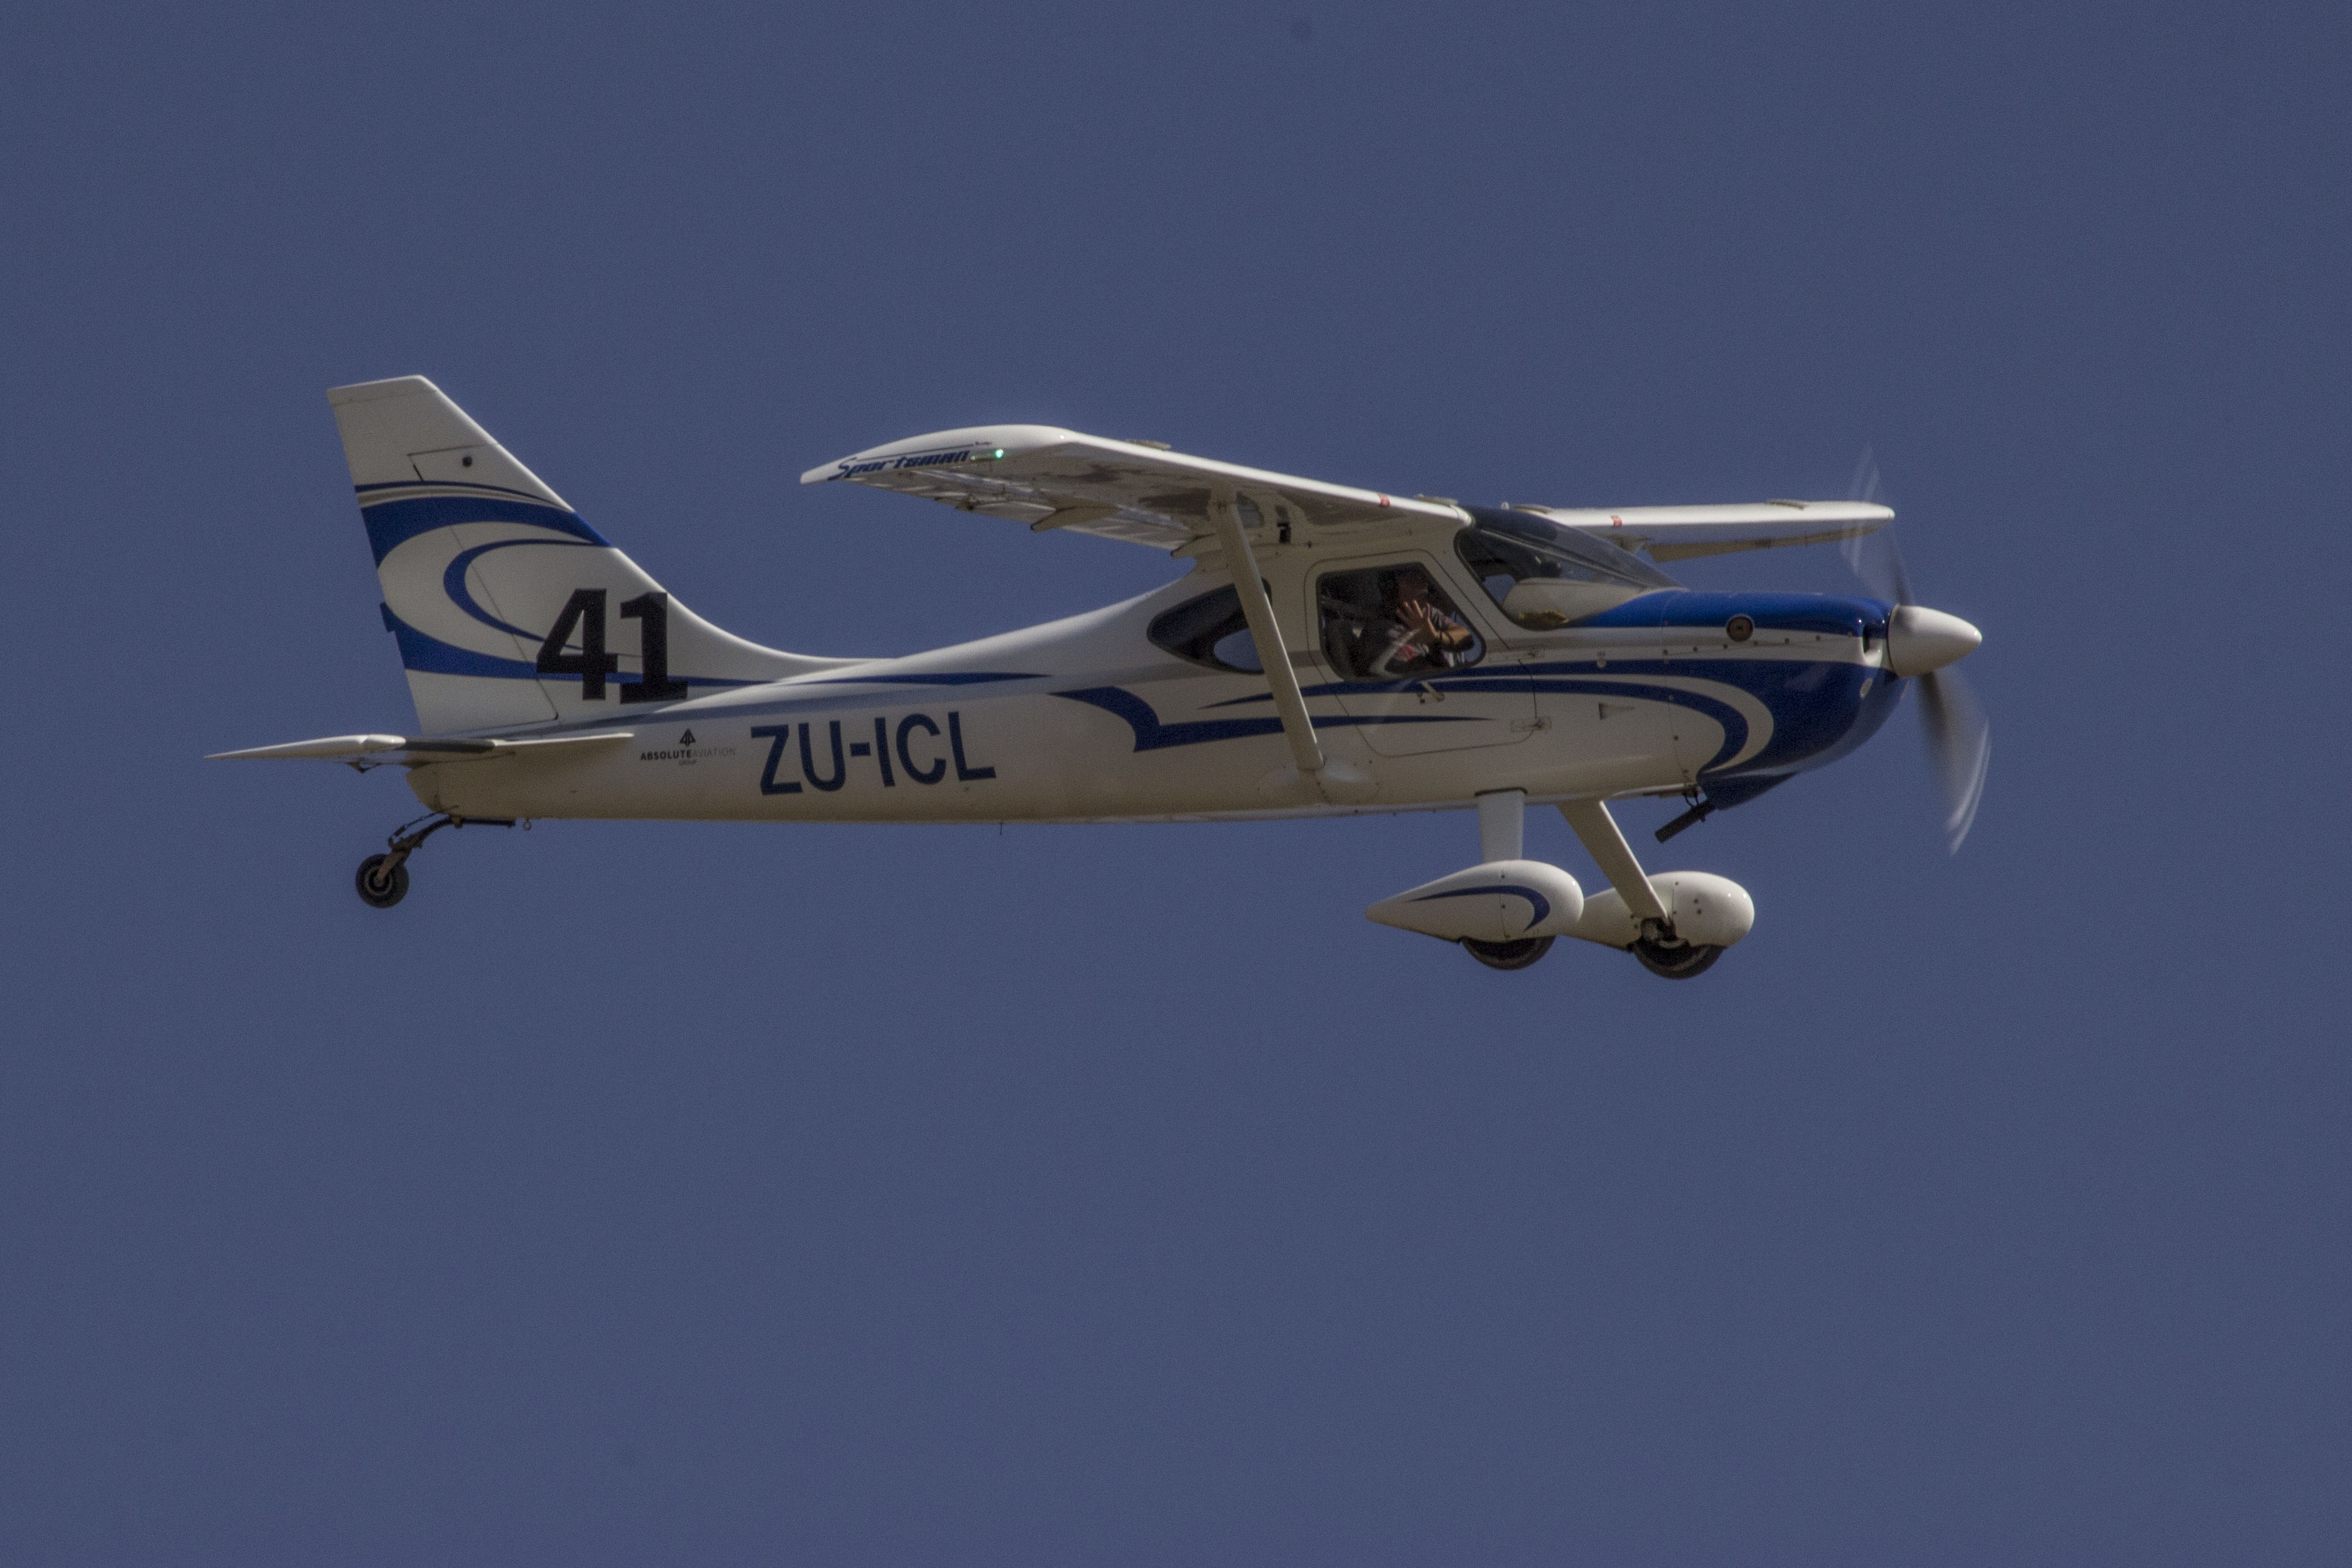 Race 41  ZU-ICL  Glasair Aviation GS-2 180  Peter Sheppard  Alan Sheppard  Mashonaland Flying Club